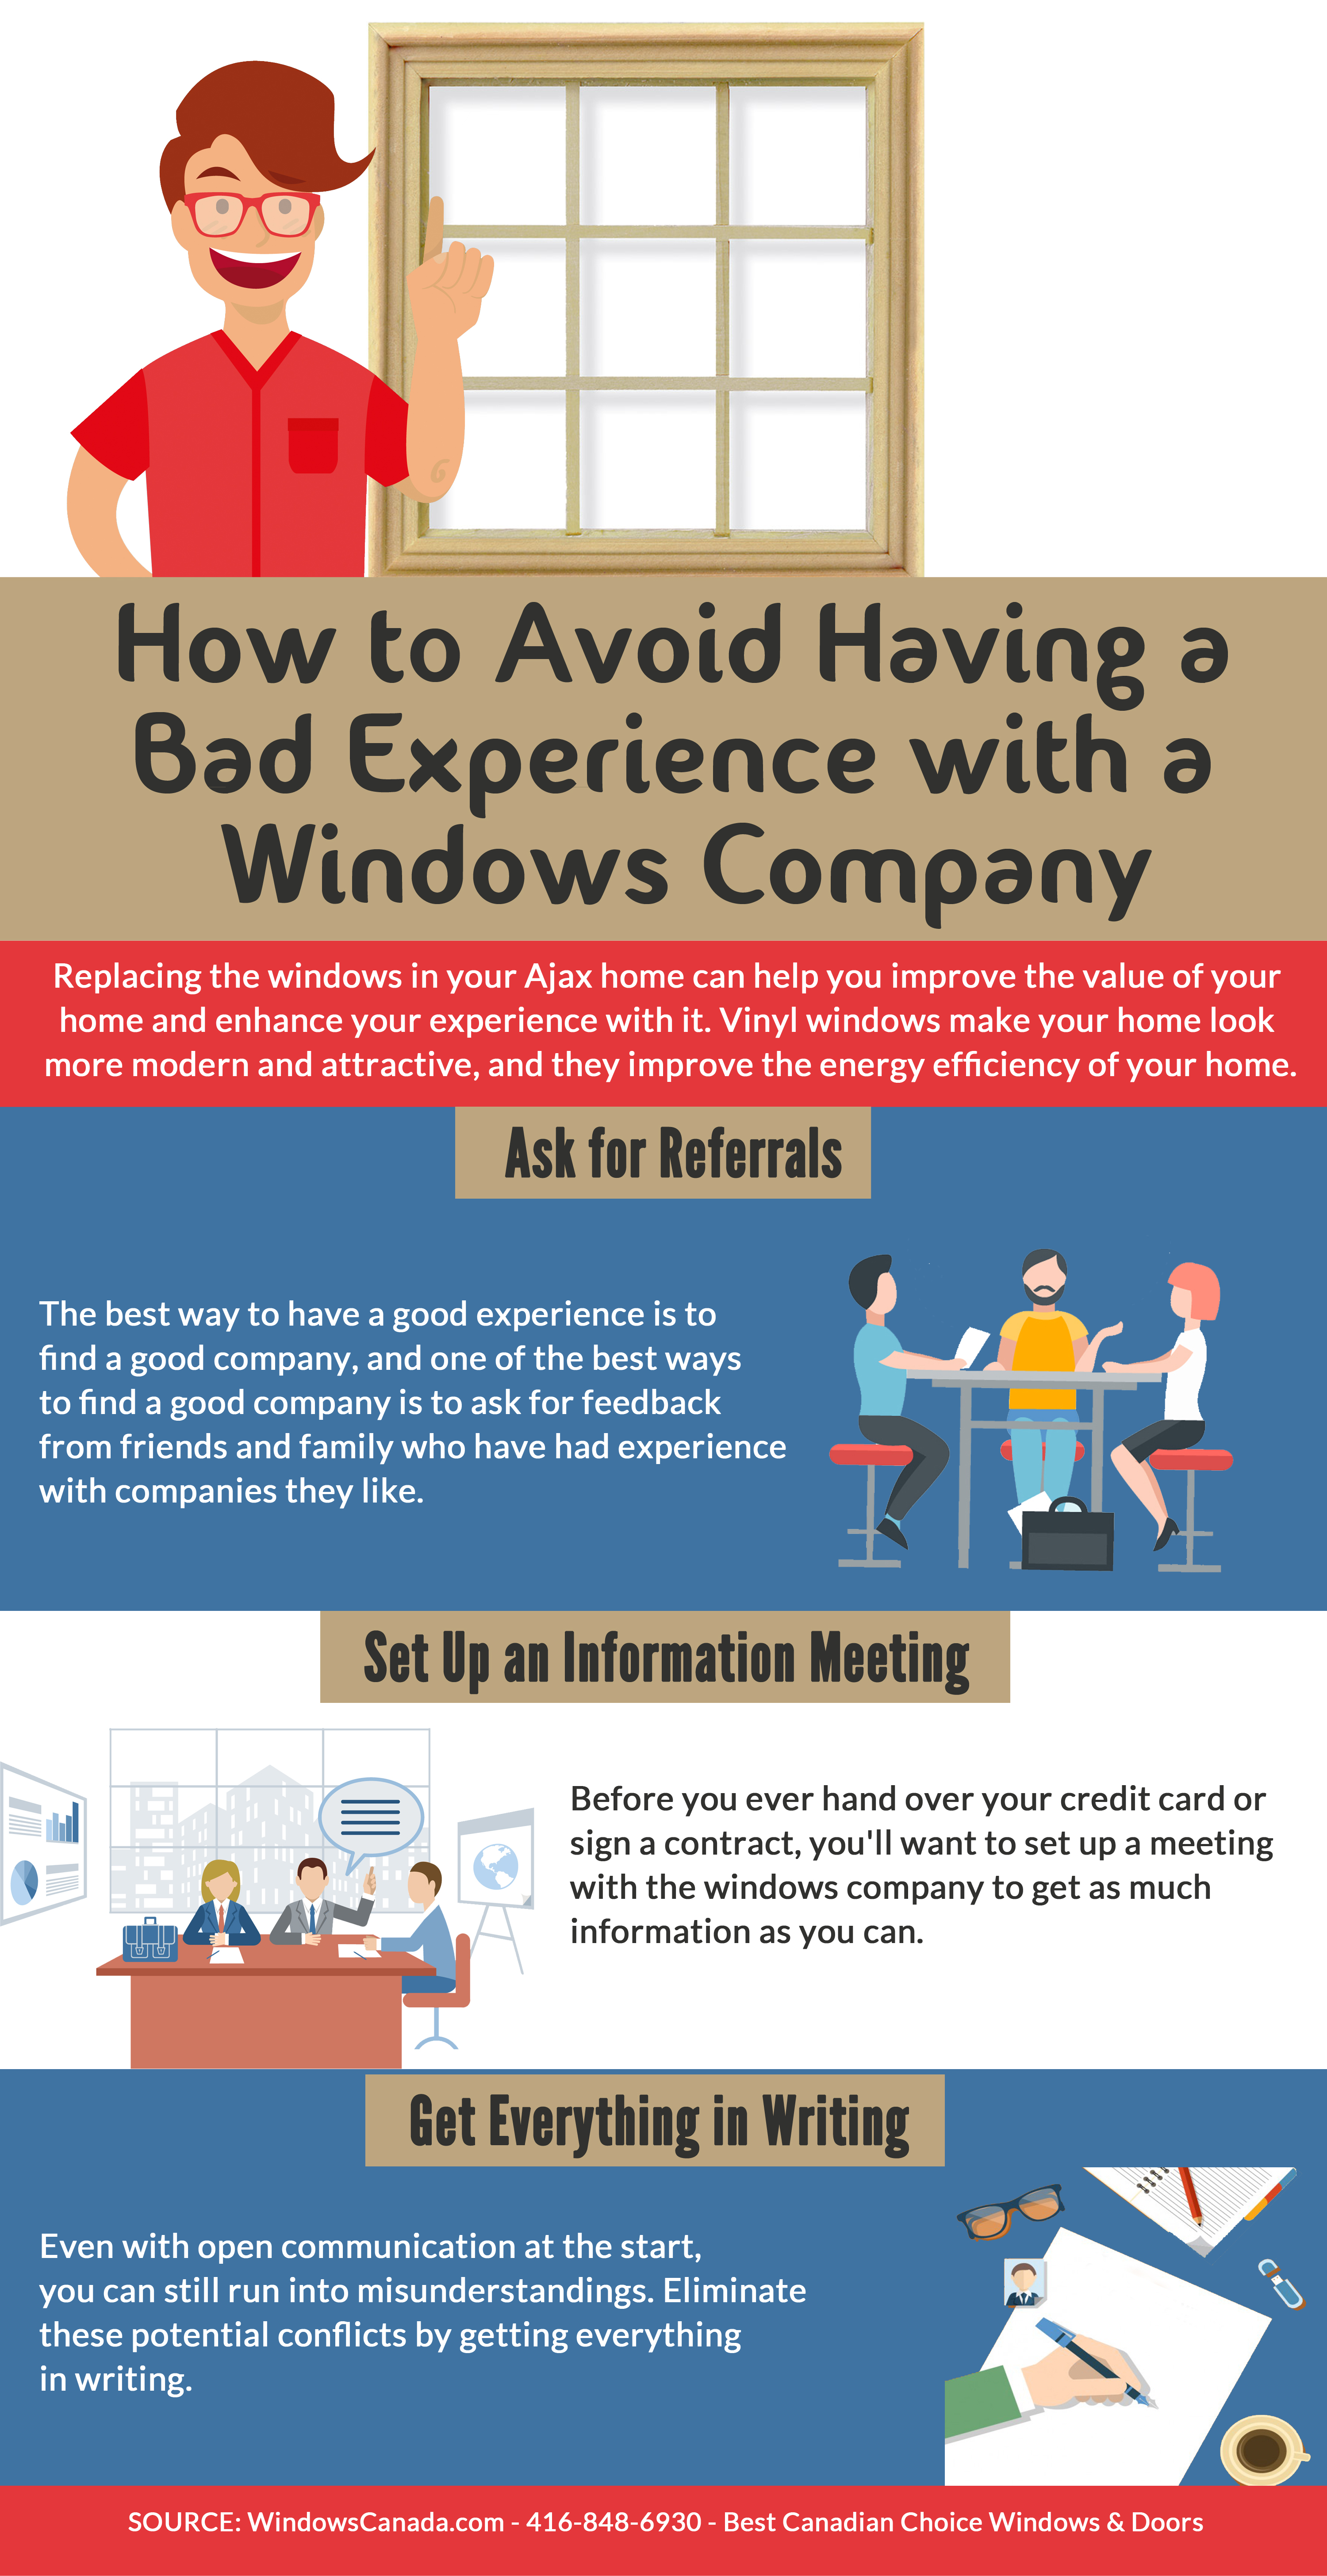 How to Avoid Having a Bad Experience with a Windows Company